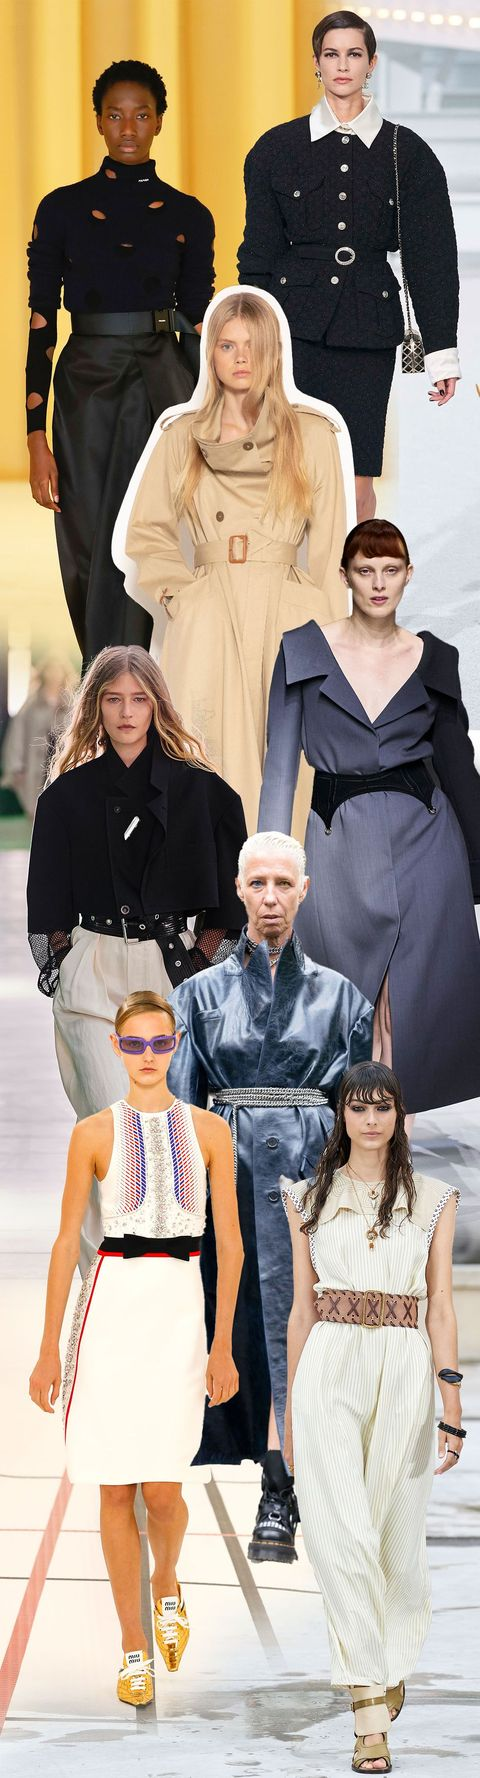 Spring 7 Fashion Trends - Fashion Trends from Spring 7